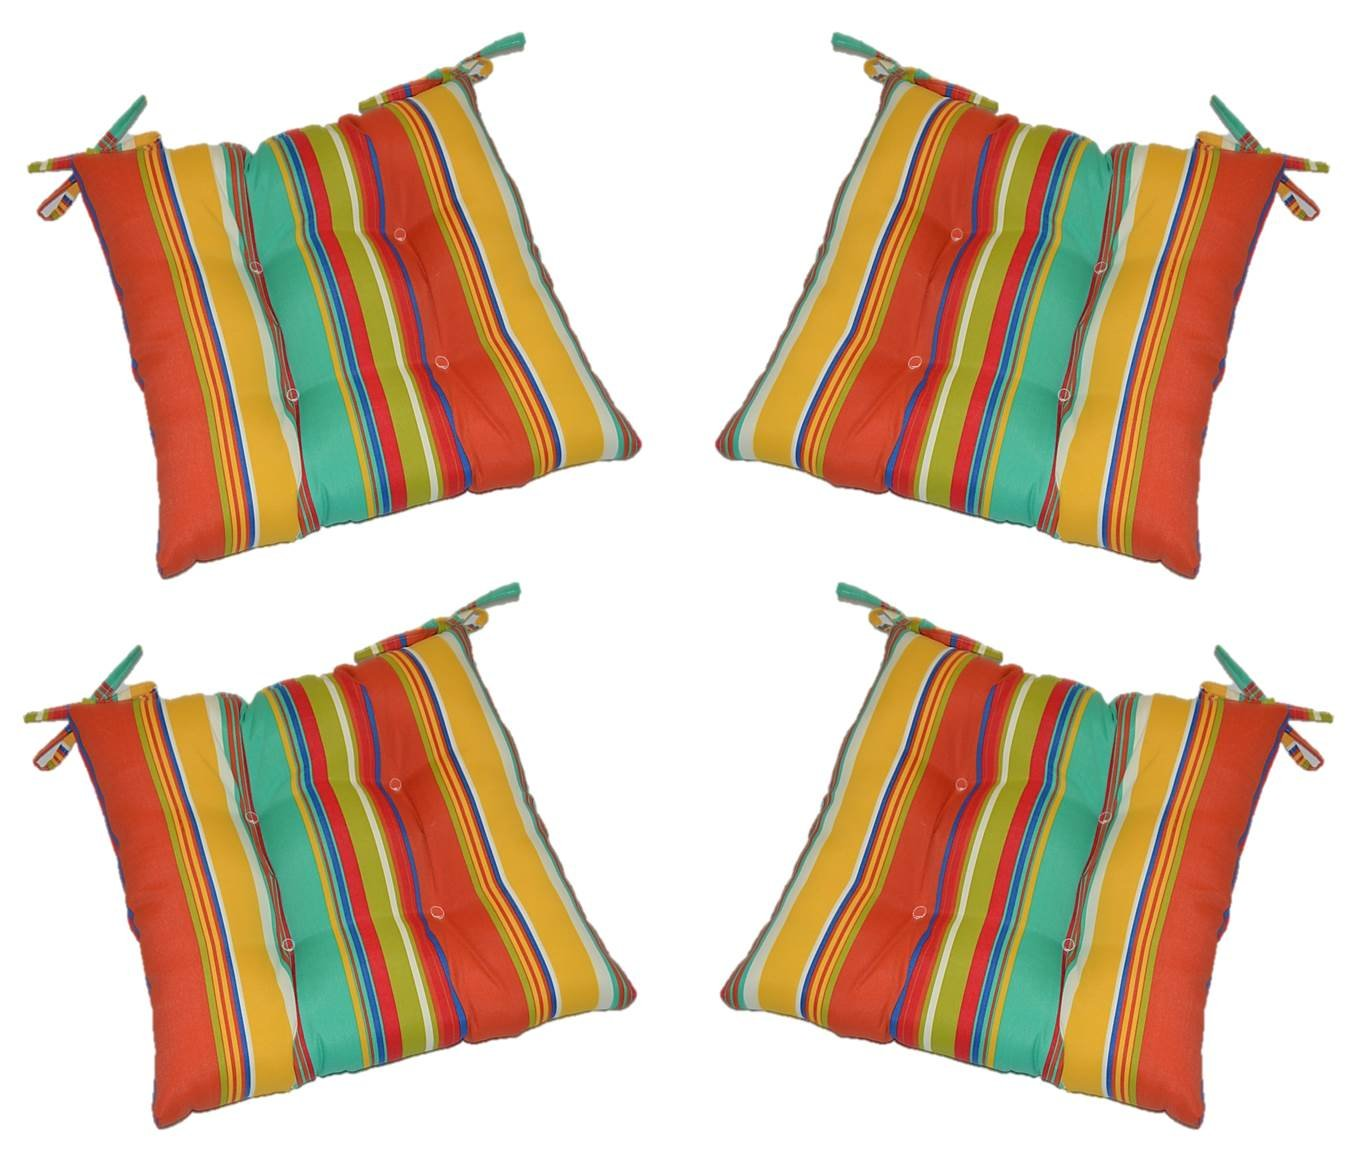 Set of 4 – Indoor Outdoor Coral, Yellow, Turquoise Bright Colorful Stripe Universal Tufted Seat Cushions with Ties for Dining Patio Chairs – Choose Size 17 1 2 x 17 1 2